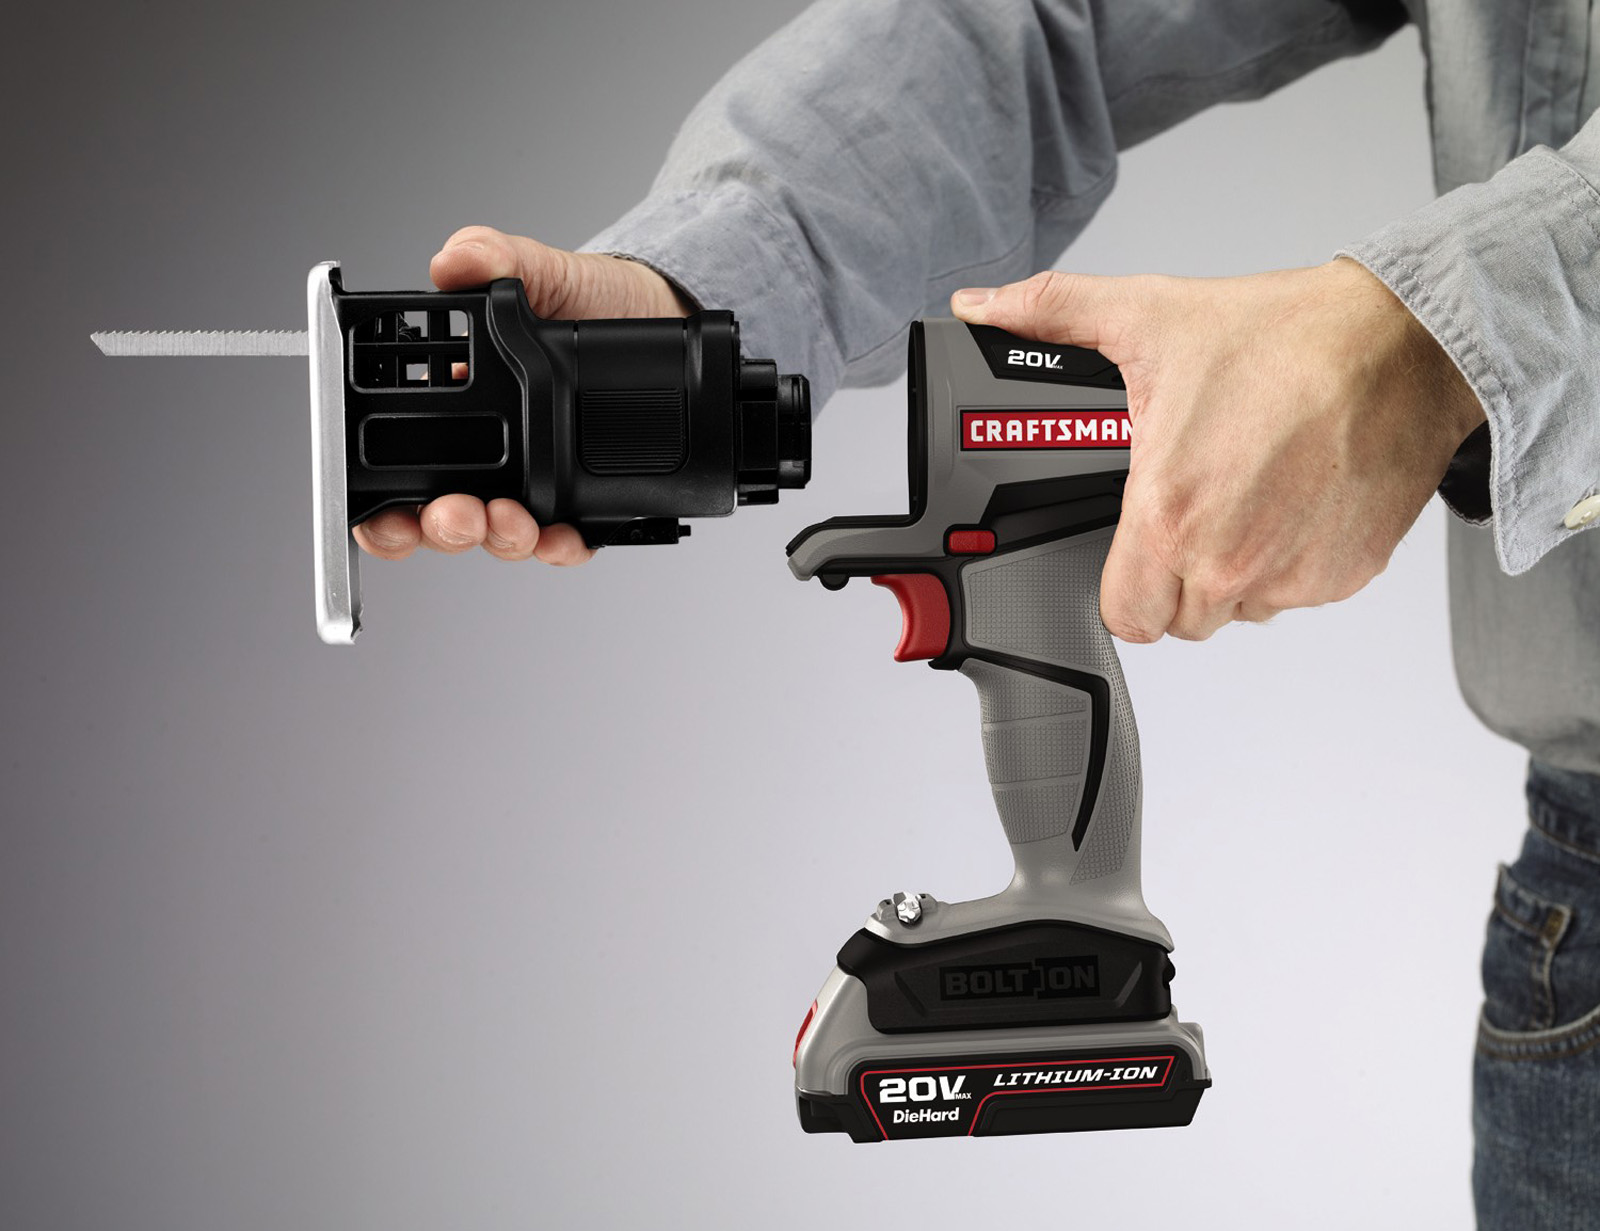 Craftsman Bolt-On ™ Jig Saw Attachment